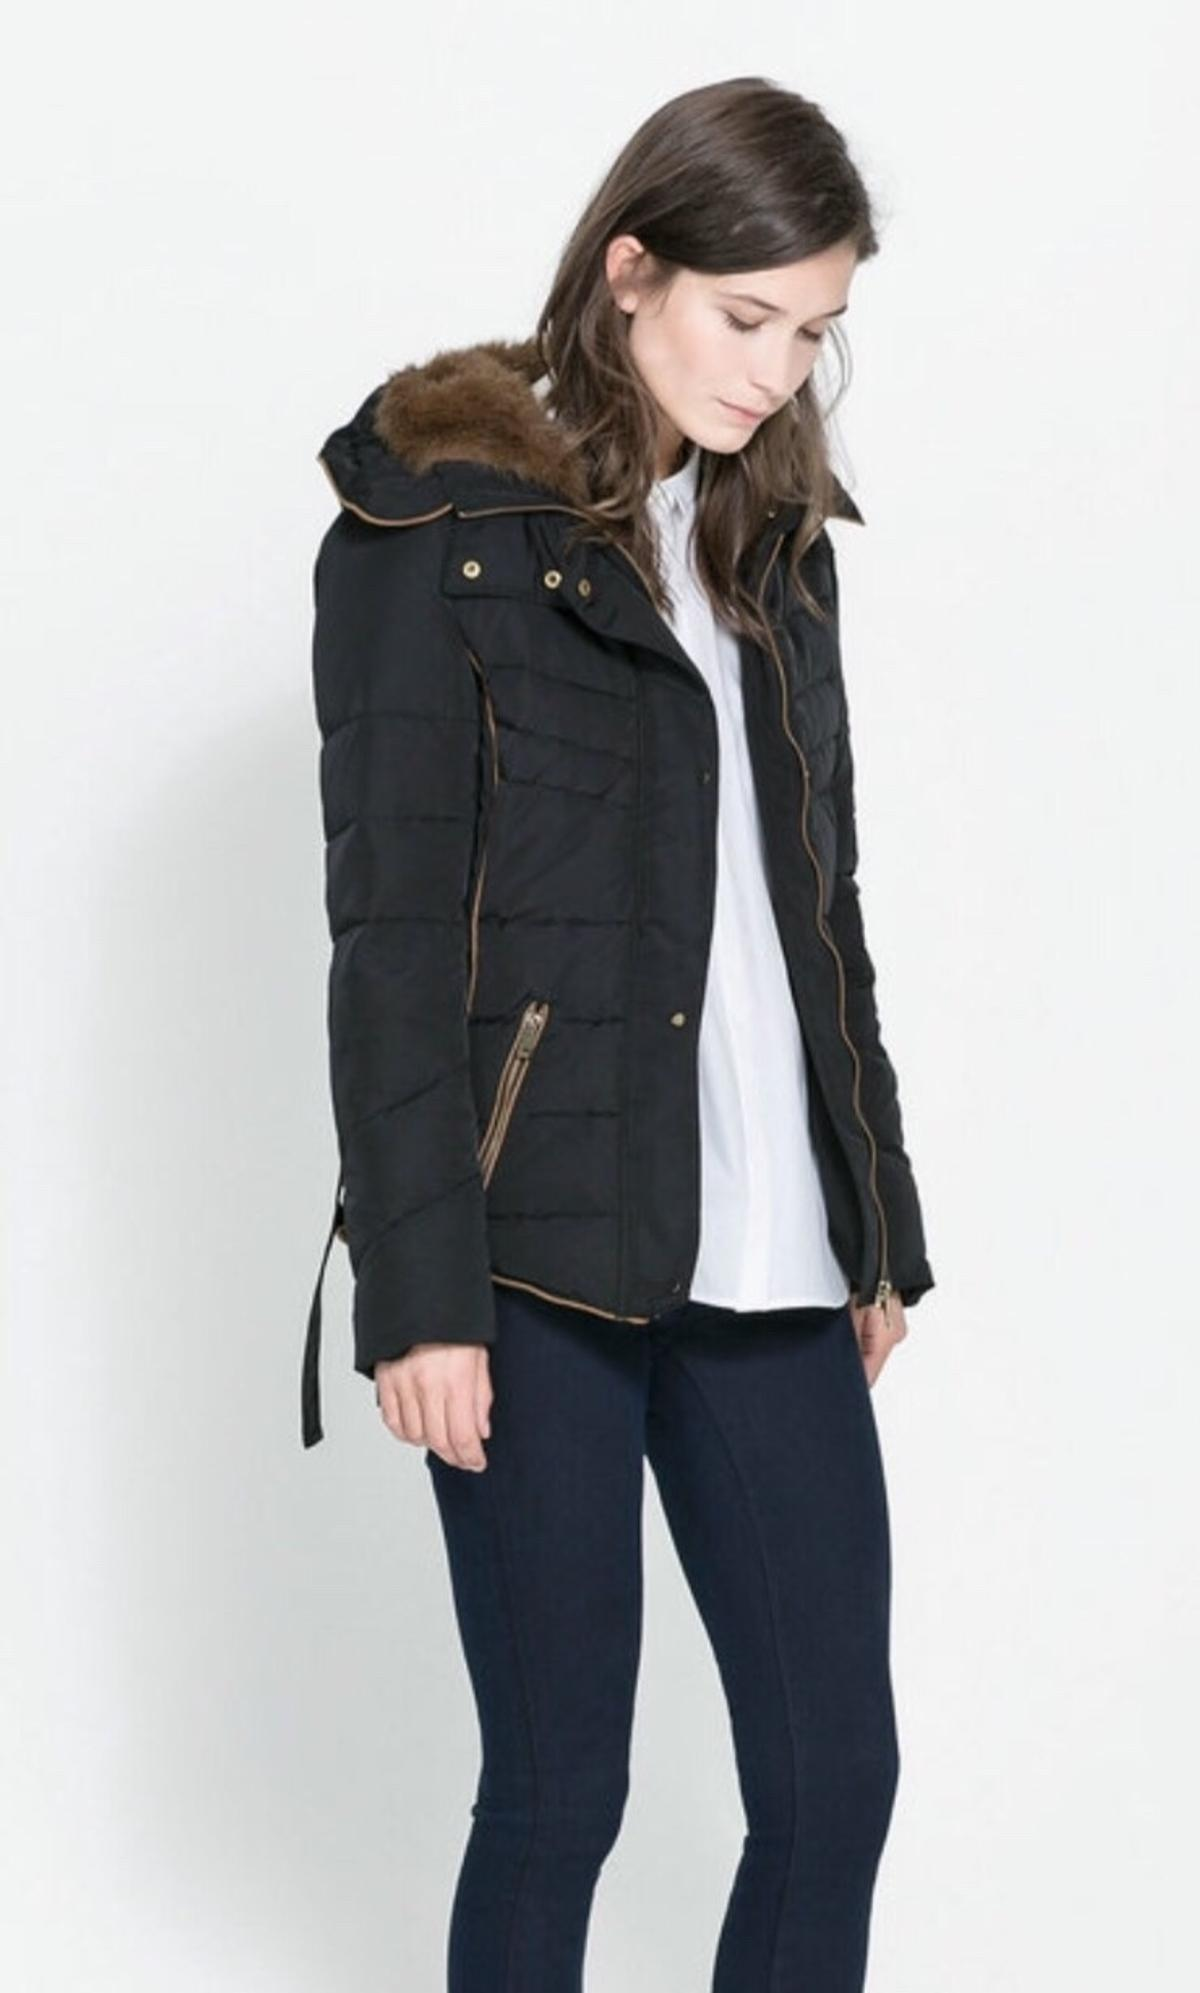 f9368175 Zara winter coat in HA9 London for £25.00 for sale - Shpock